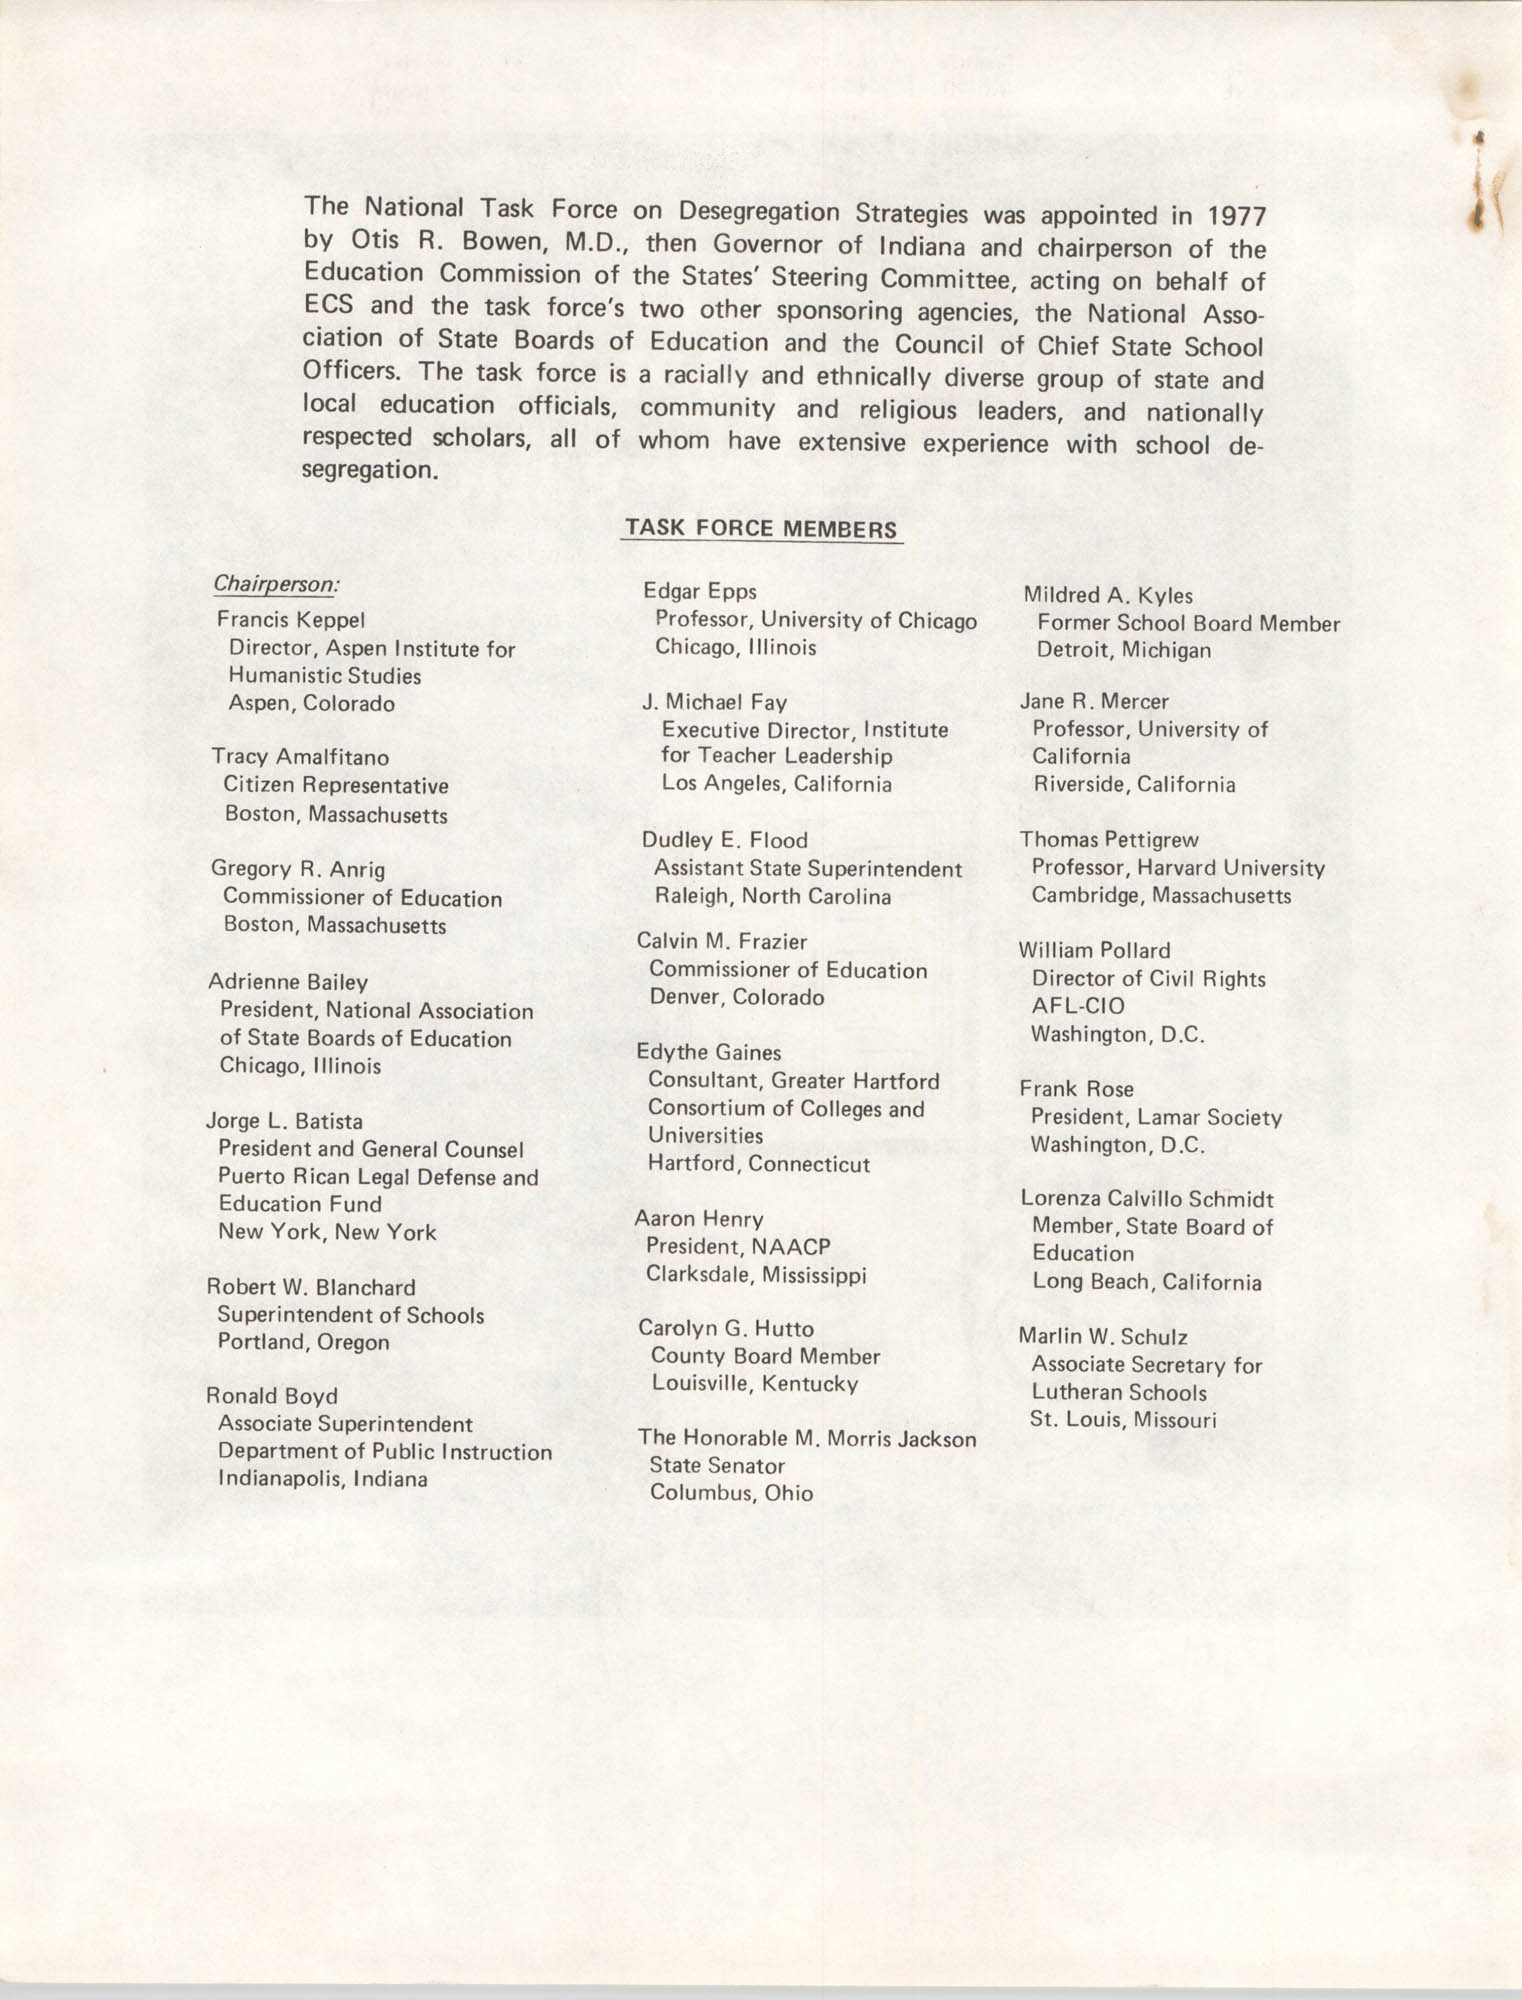 Position Statement on Desegregation, National Task Force on Desegregation Strategies, Title Page